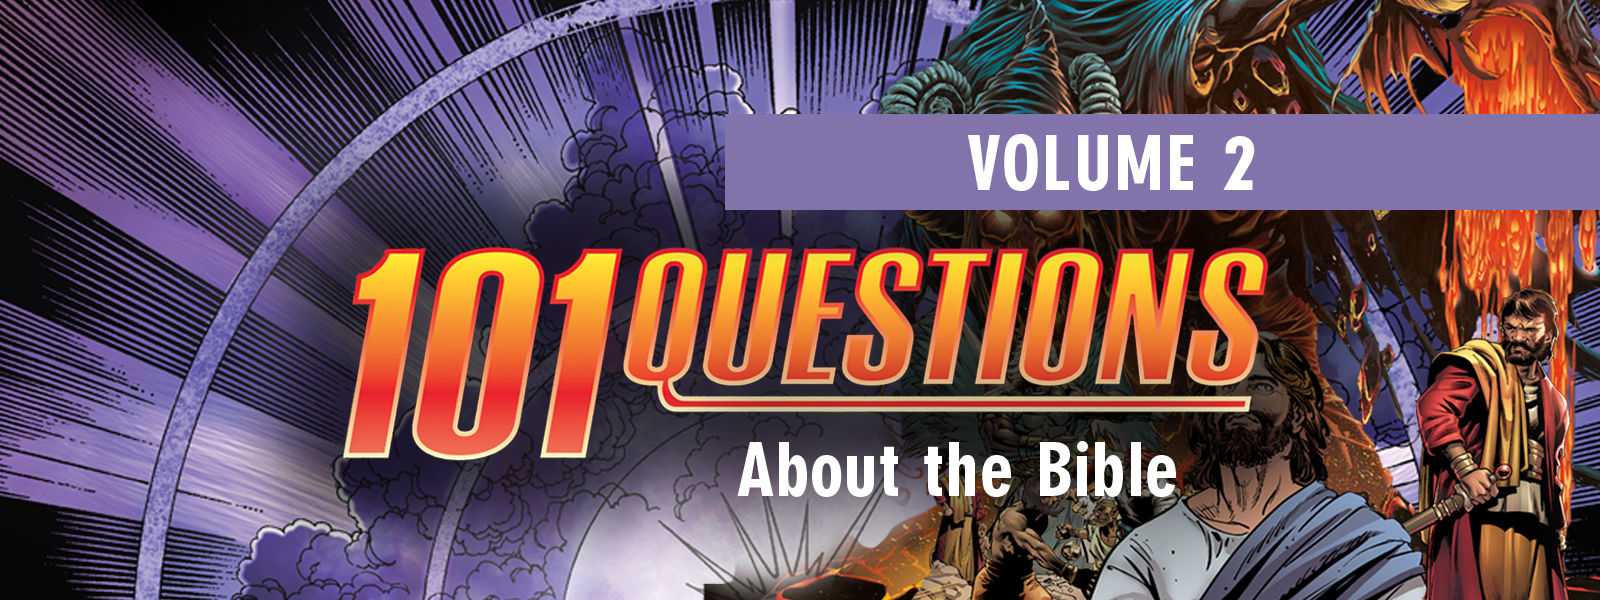 RightNow Media :: Streaming Video Bible Study : 101 Questions